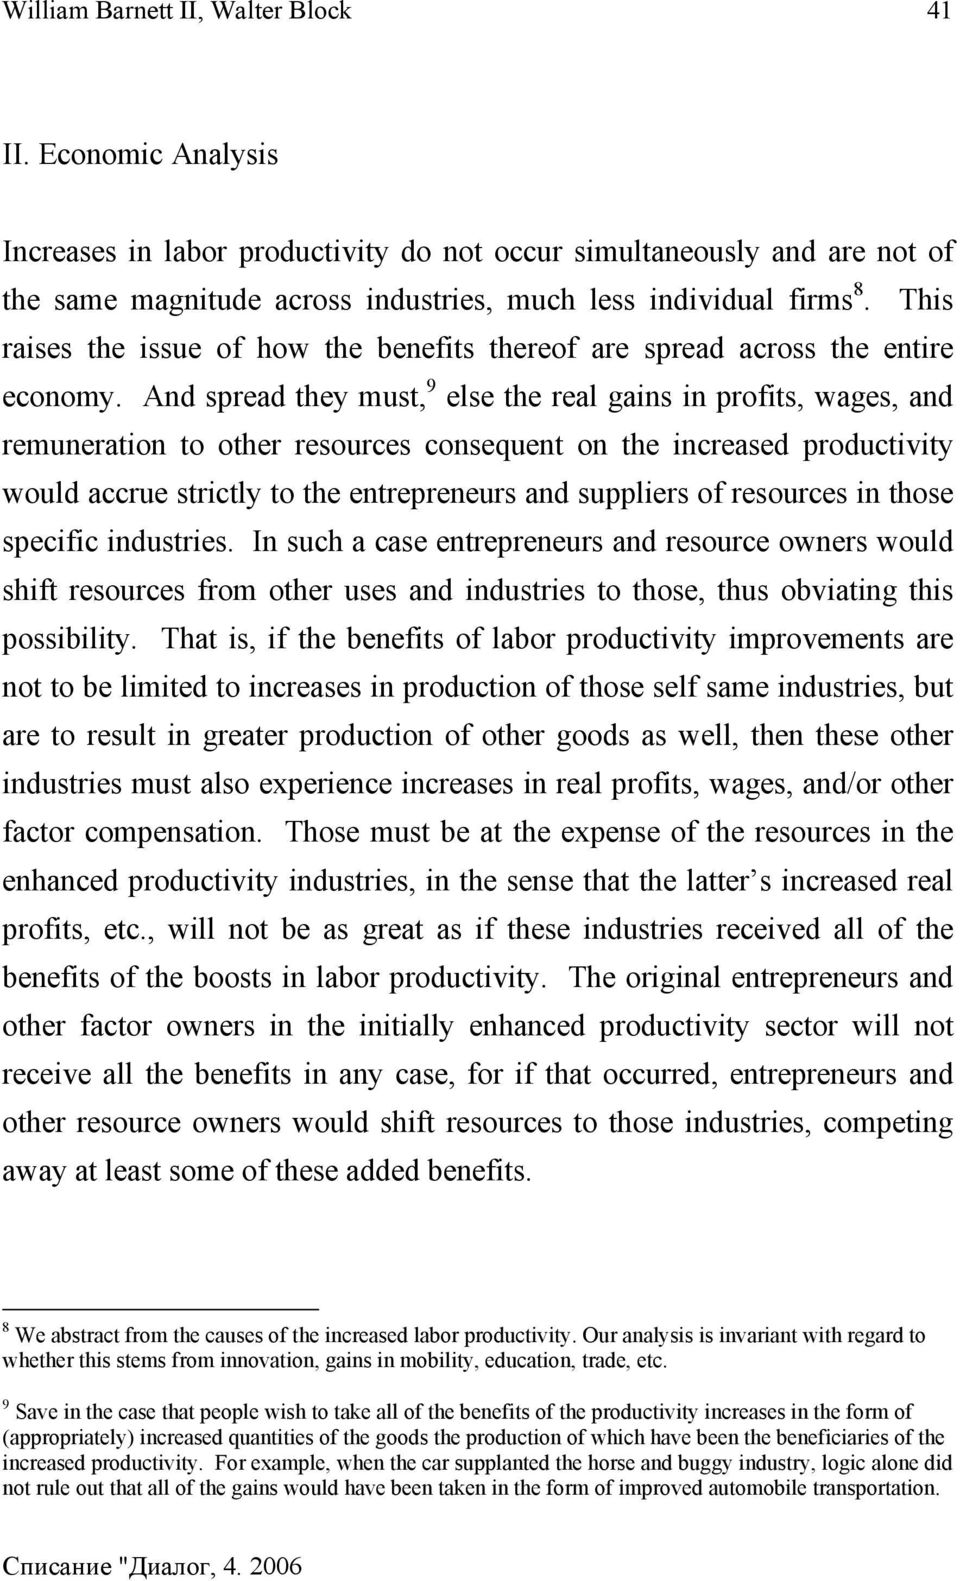 And spread they must, 9 else the real gains in profits, wages, and remuneration to other resources consequent on the increased productivity would accrue strictly to the entrepreneurs and suppliers of